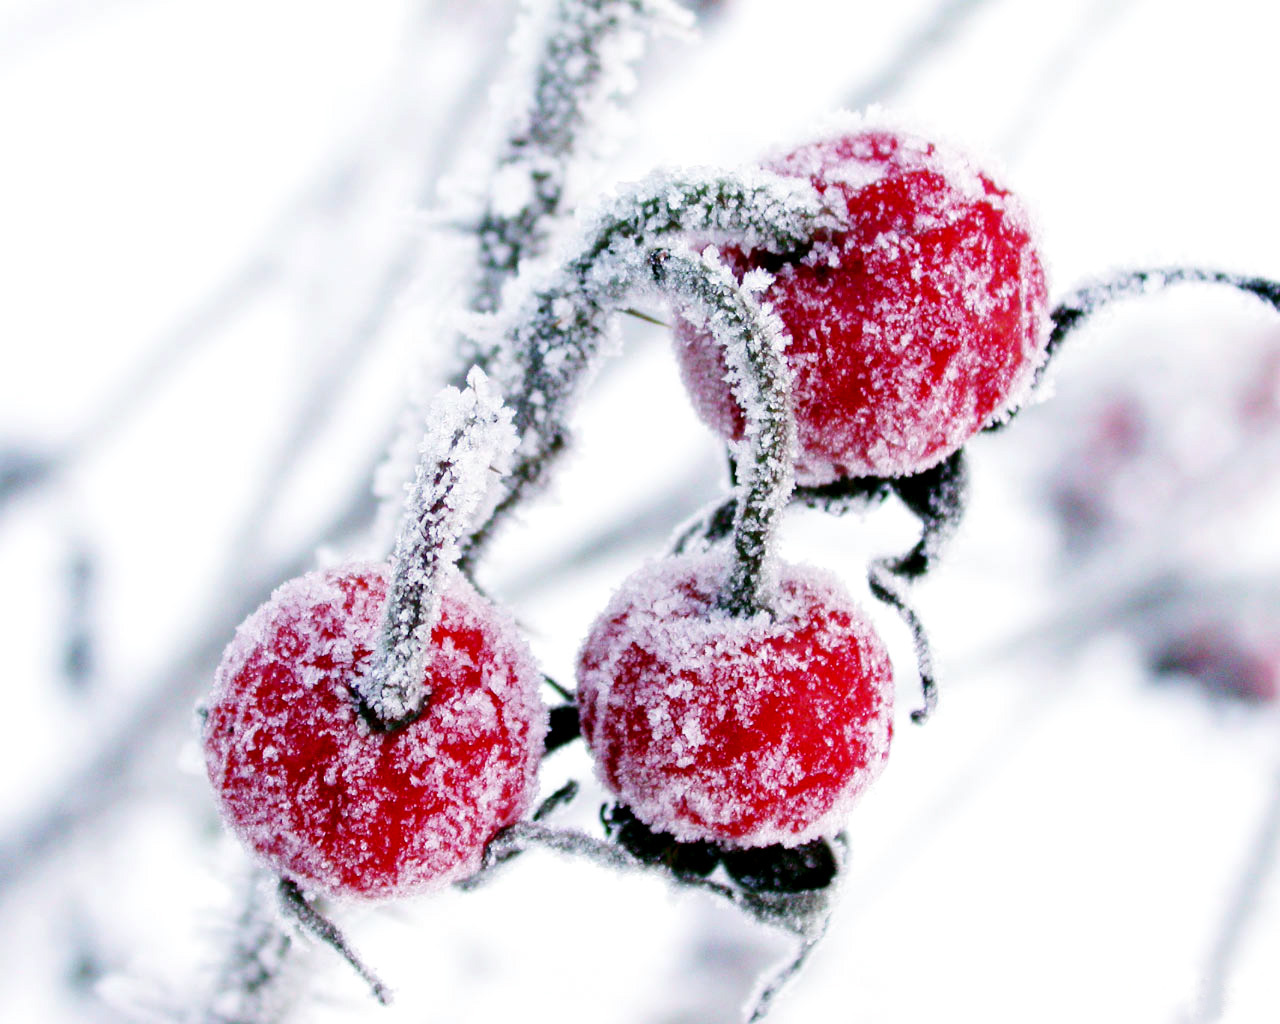 14551 download wallpaper Plants, Winter, Fruits, Berries screensavers and pictures for free